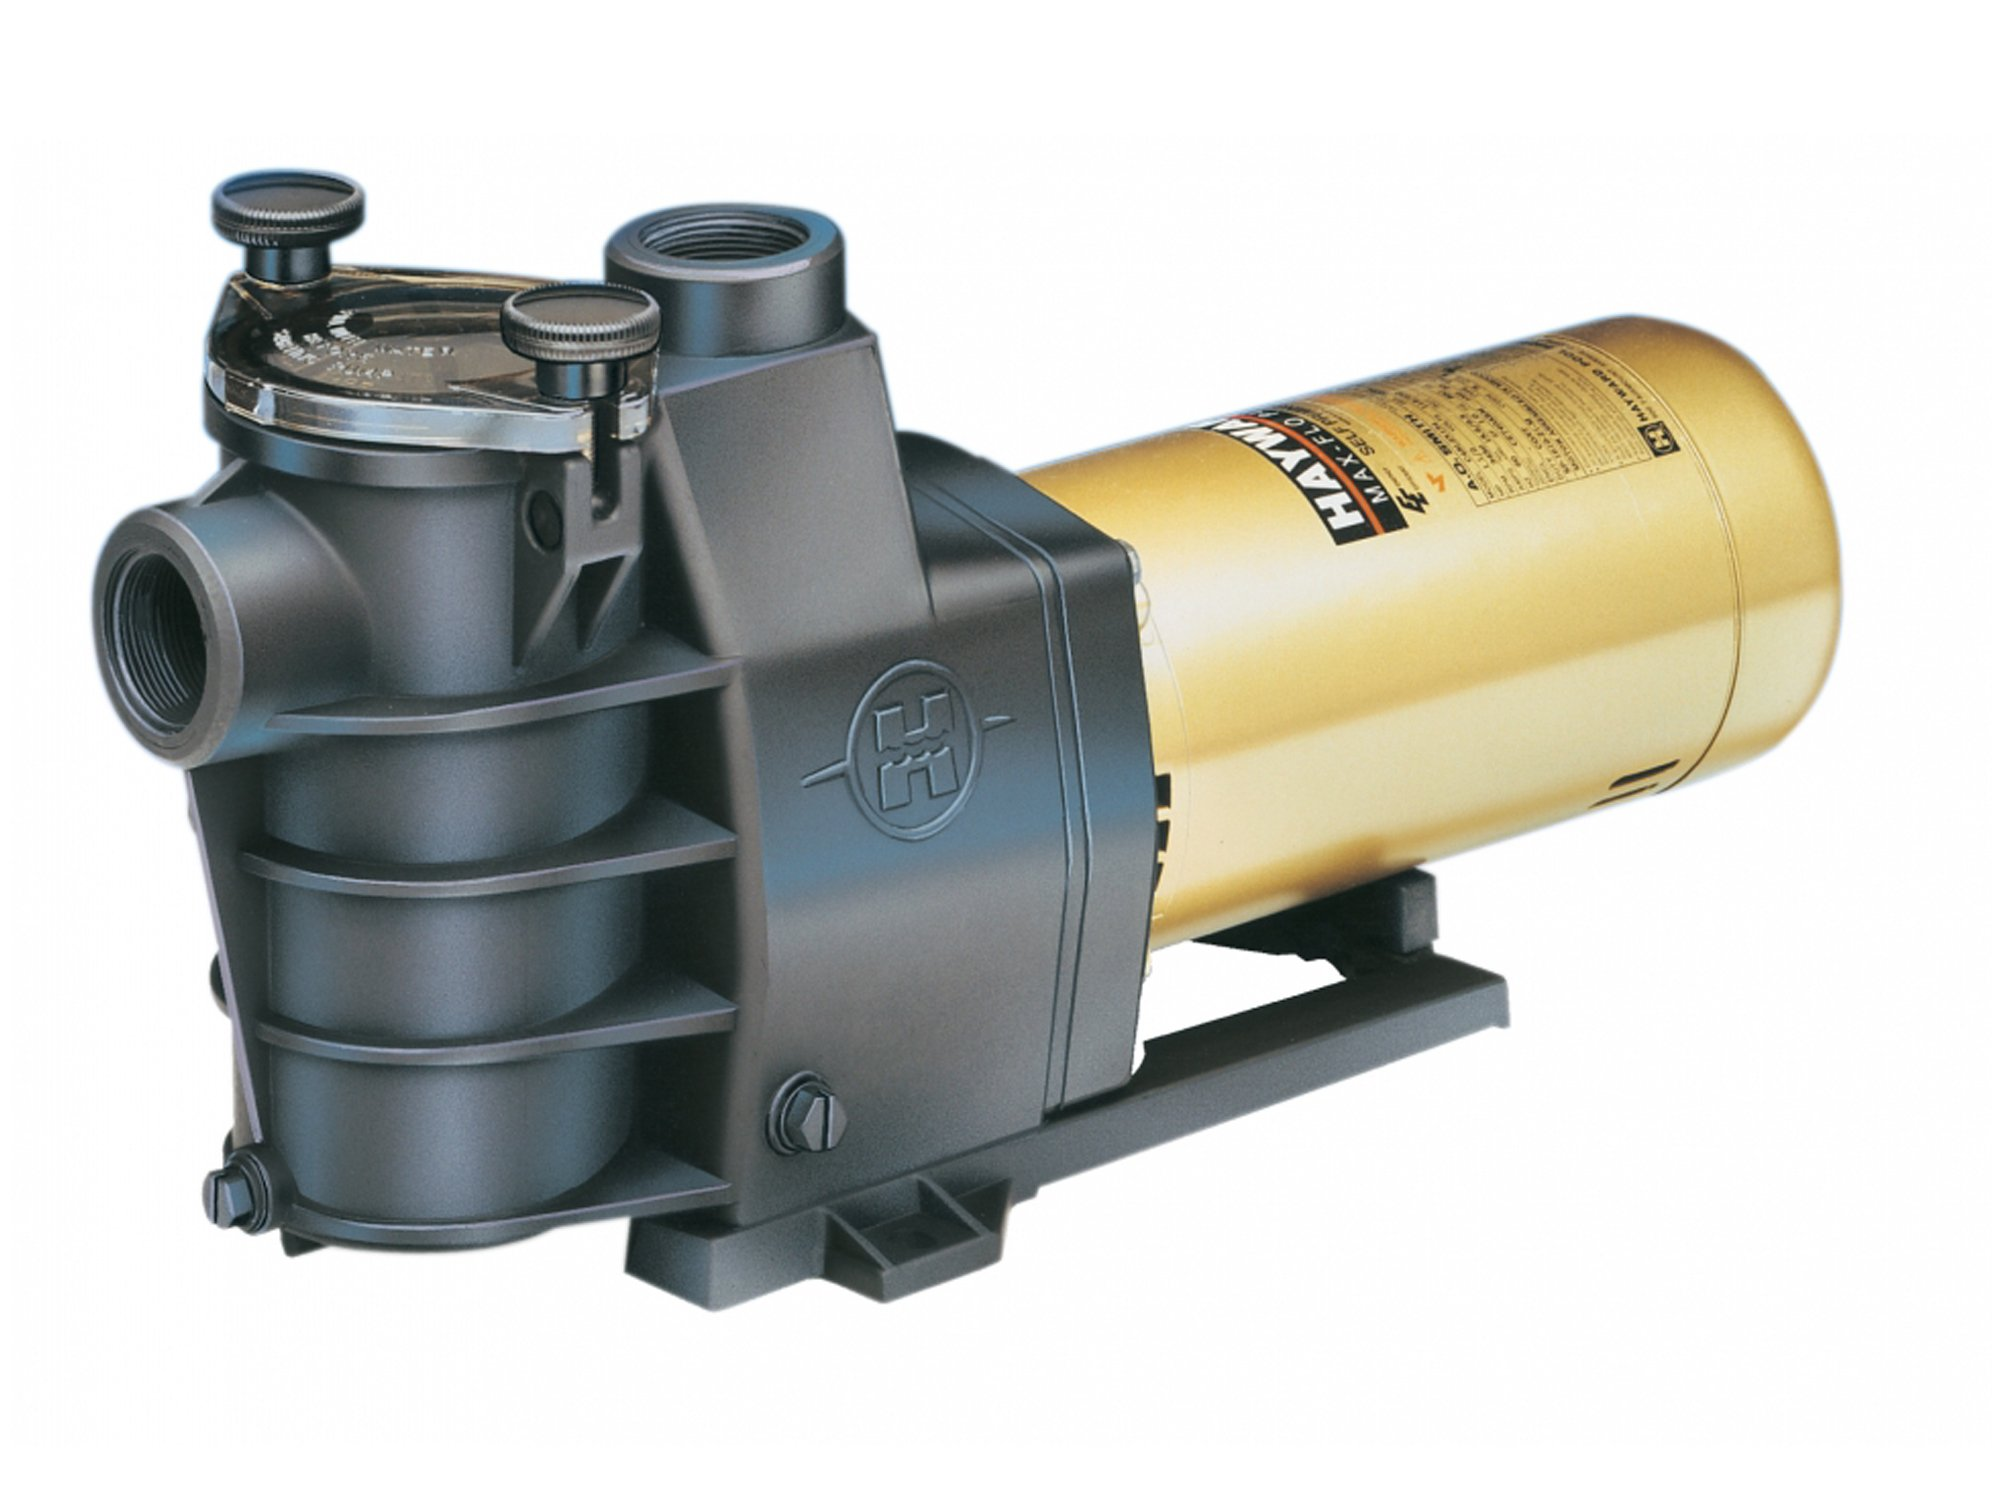 Hayward Max-flo Pump for in Ground Pools (3/4 Horsepower)